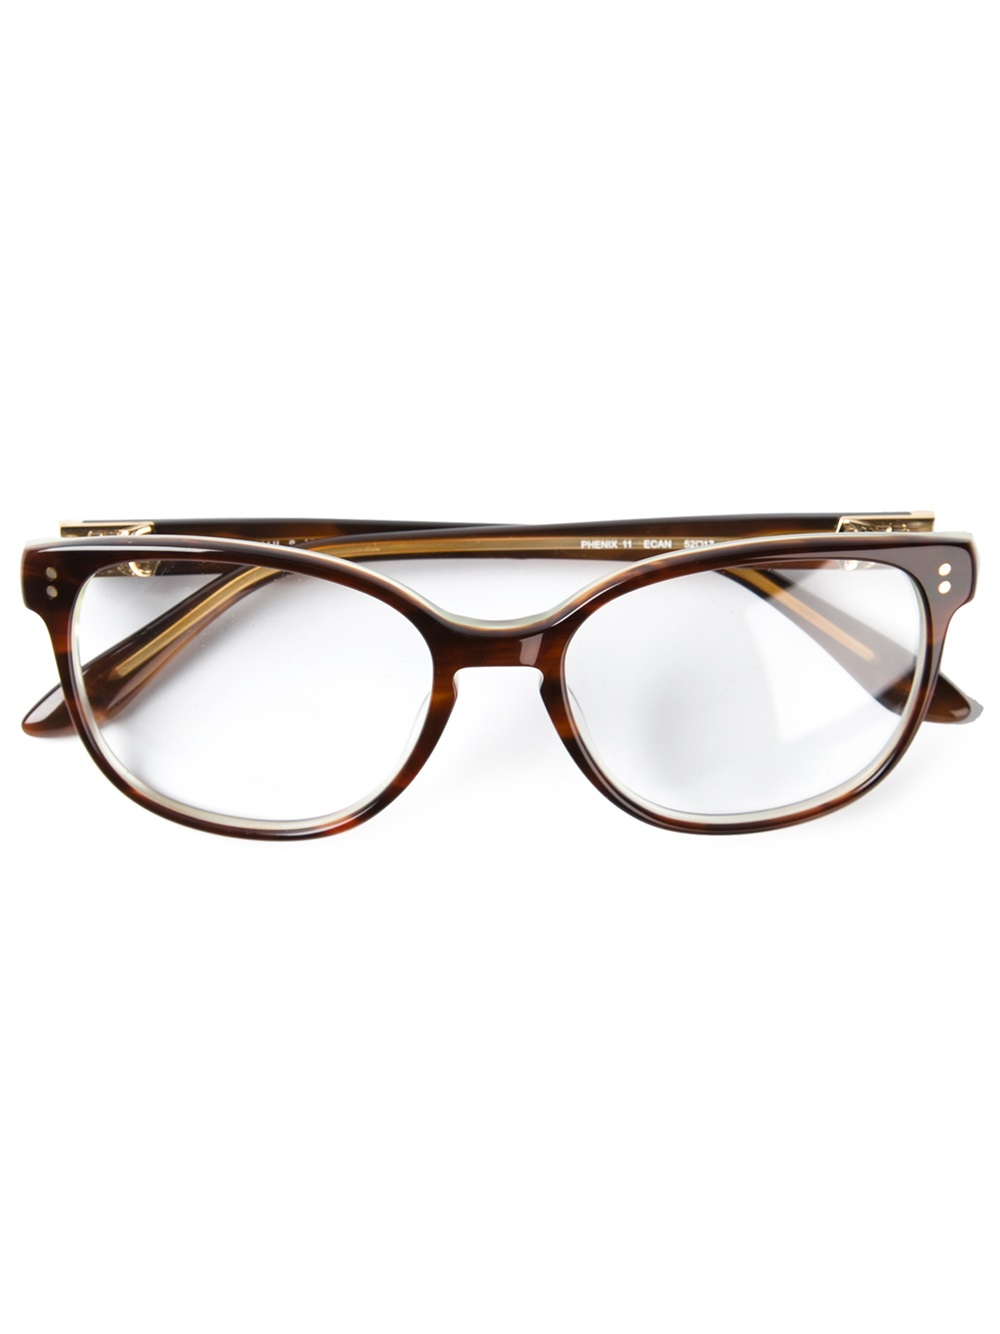 Lyst Paul Joe Phoeni Glasses In Brown. Eyeglasses Pj Bengali26 E229 49 20  Paul Joe. Eyeglasses Paul Joe Pj Bengali26 E229 49 20 Man Ecaille Aviator ac6c692db4da